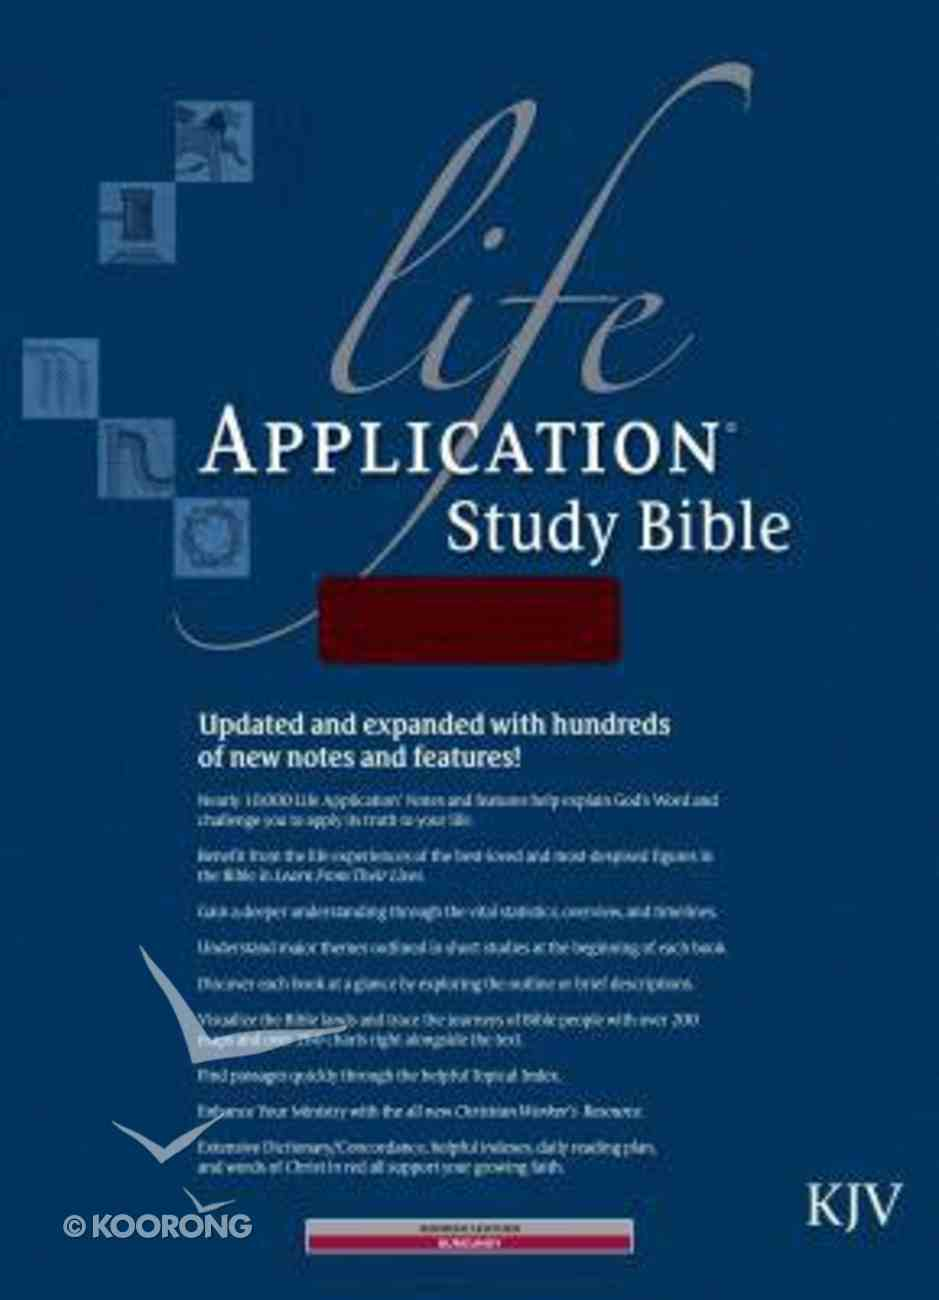 KJV Life Application Study Bible Burgundy Indexed 2nd Edition (Red Letter Edition) Bonded Leather